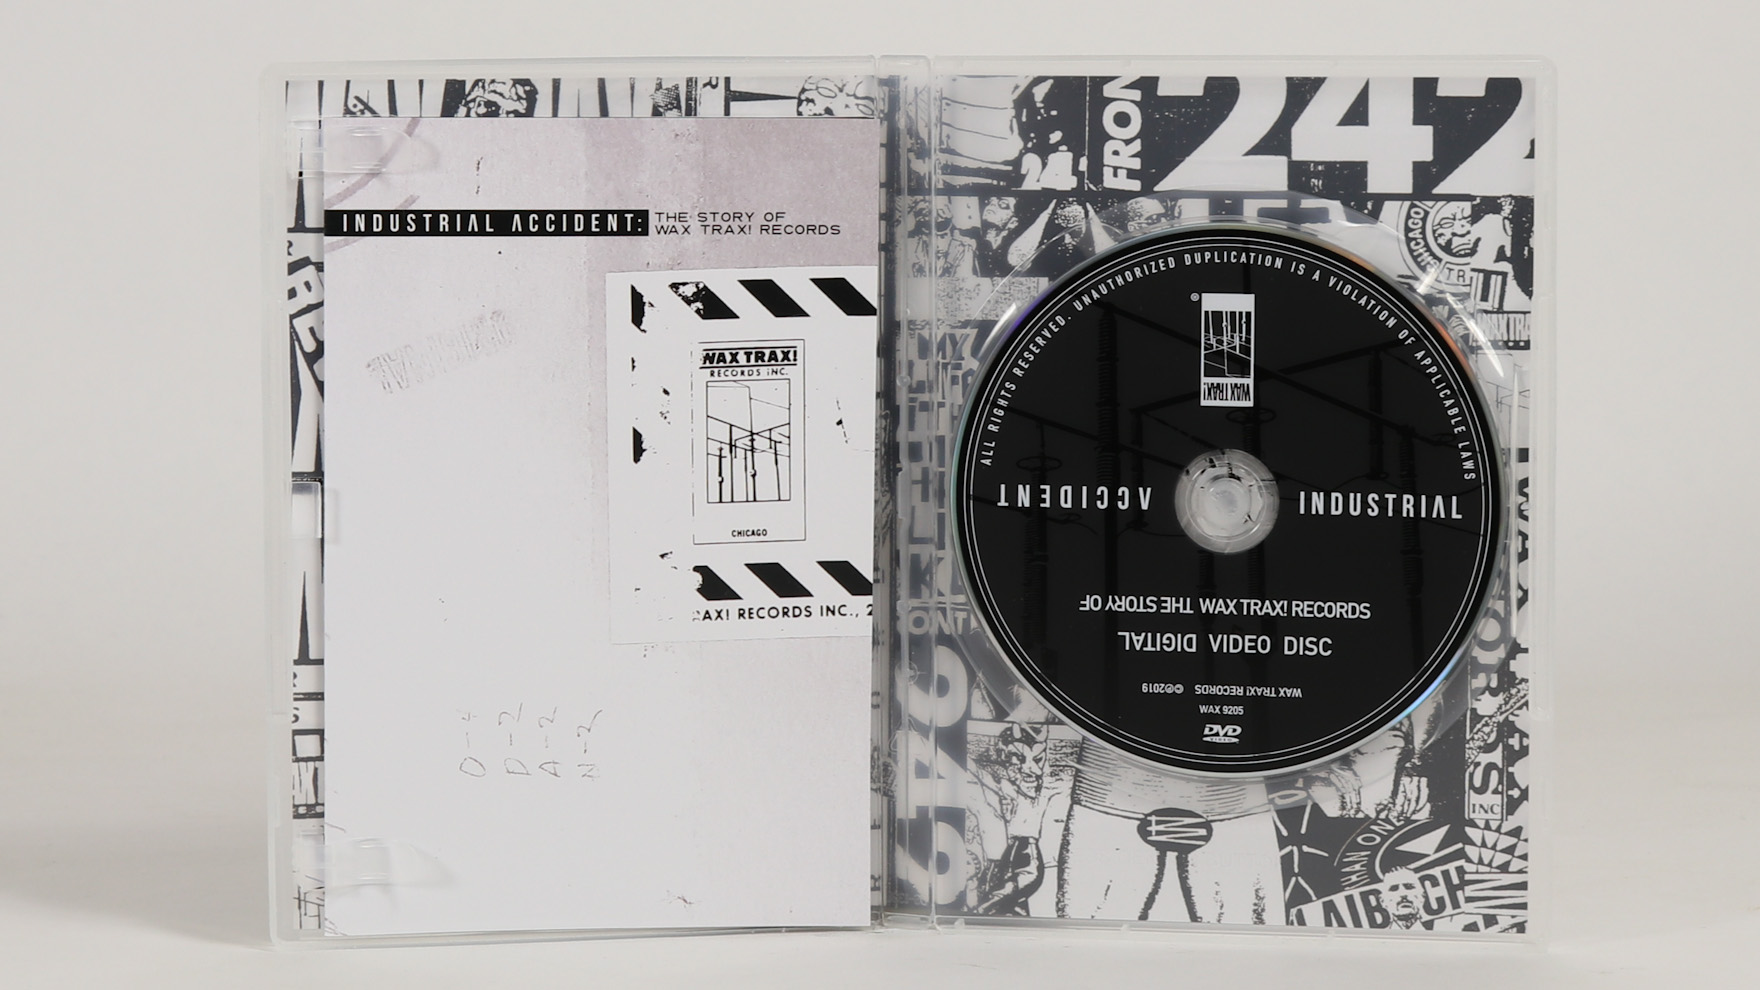 Wax Trax! – Industrial Accident [DVD]